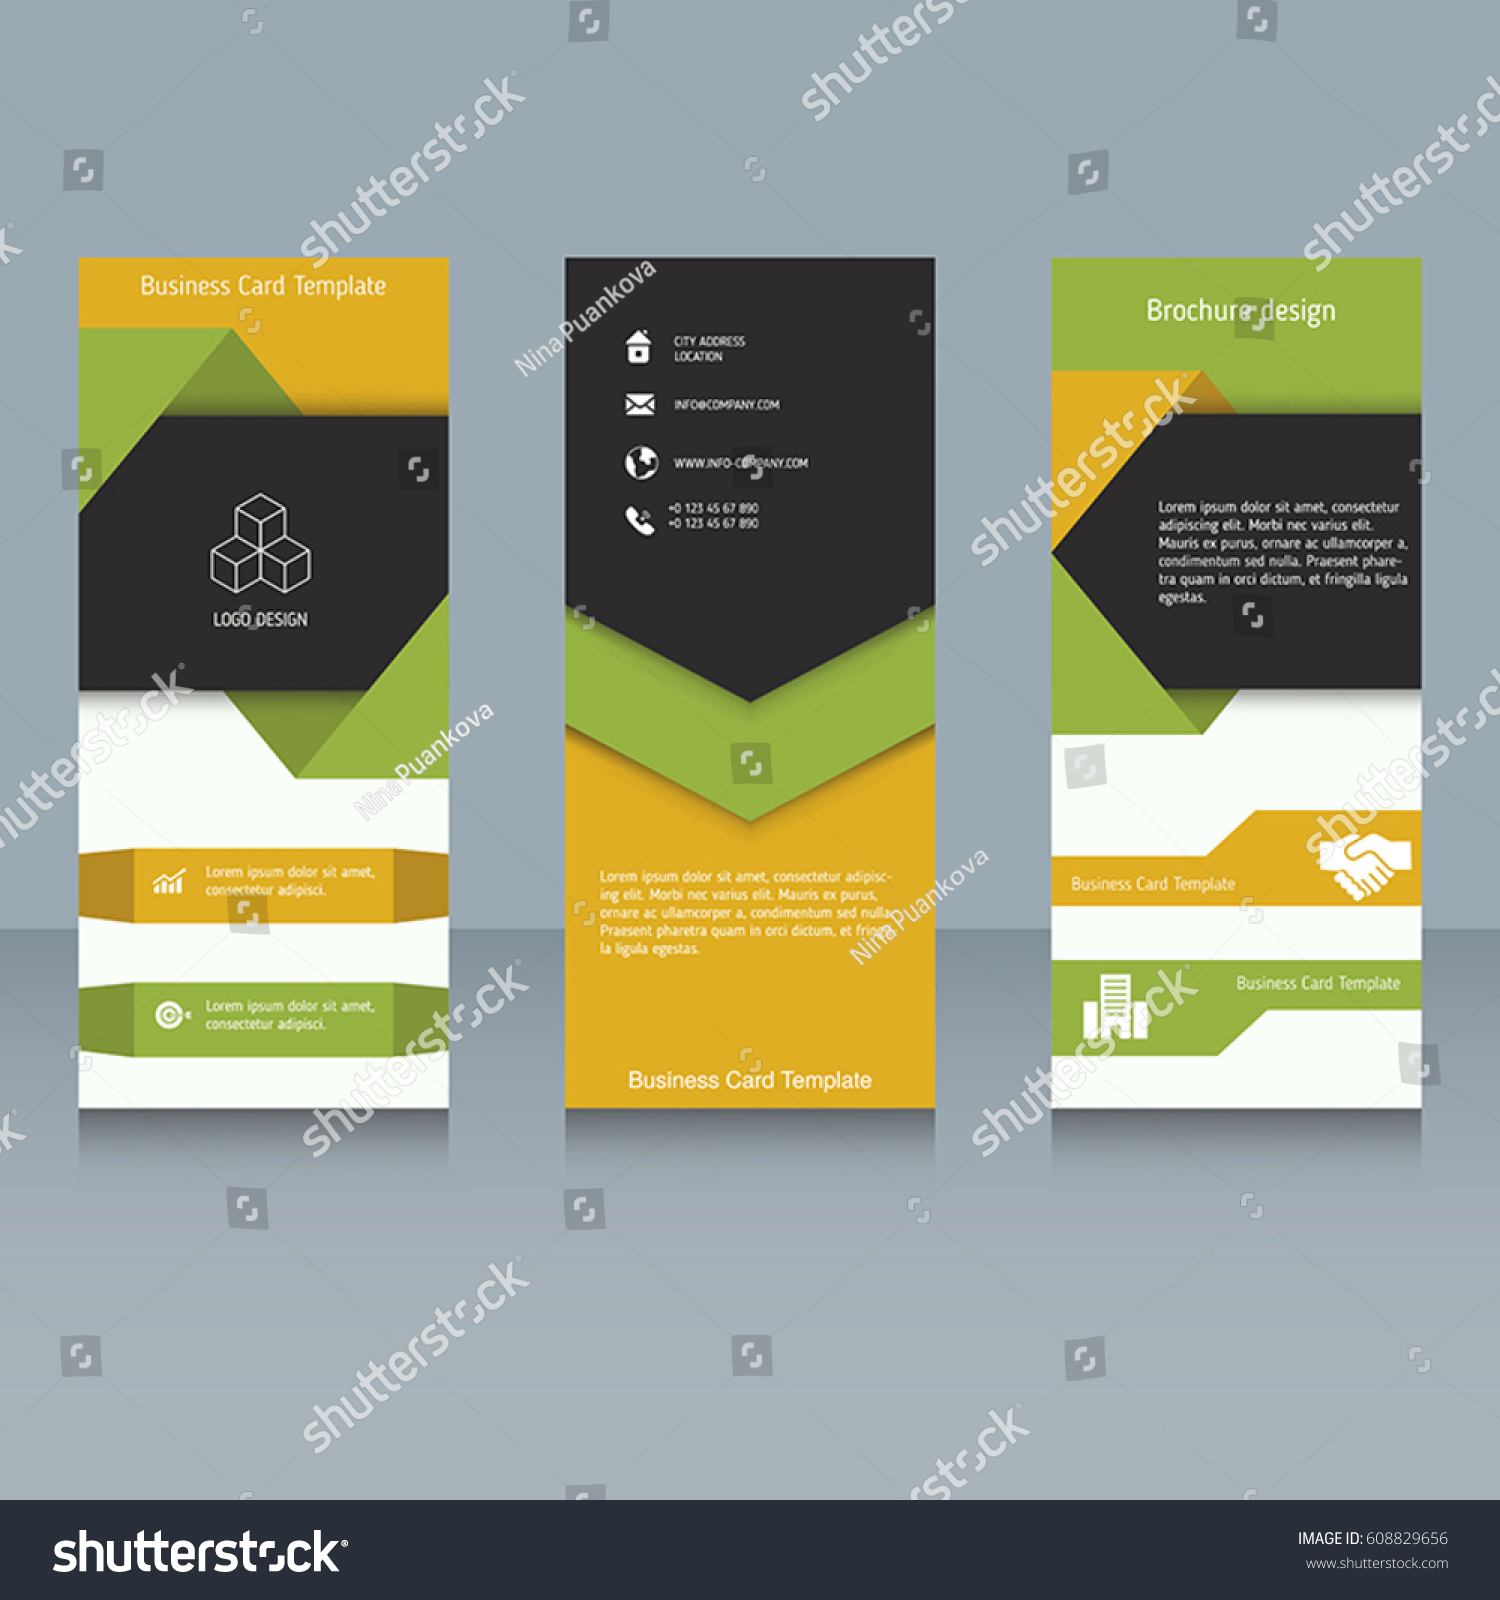 Brochure Booklet Brochure Designs Easy Adapt Stock Vector - Tri fold business card template